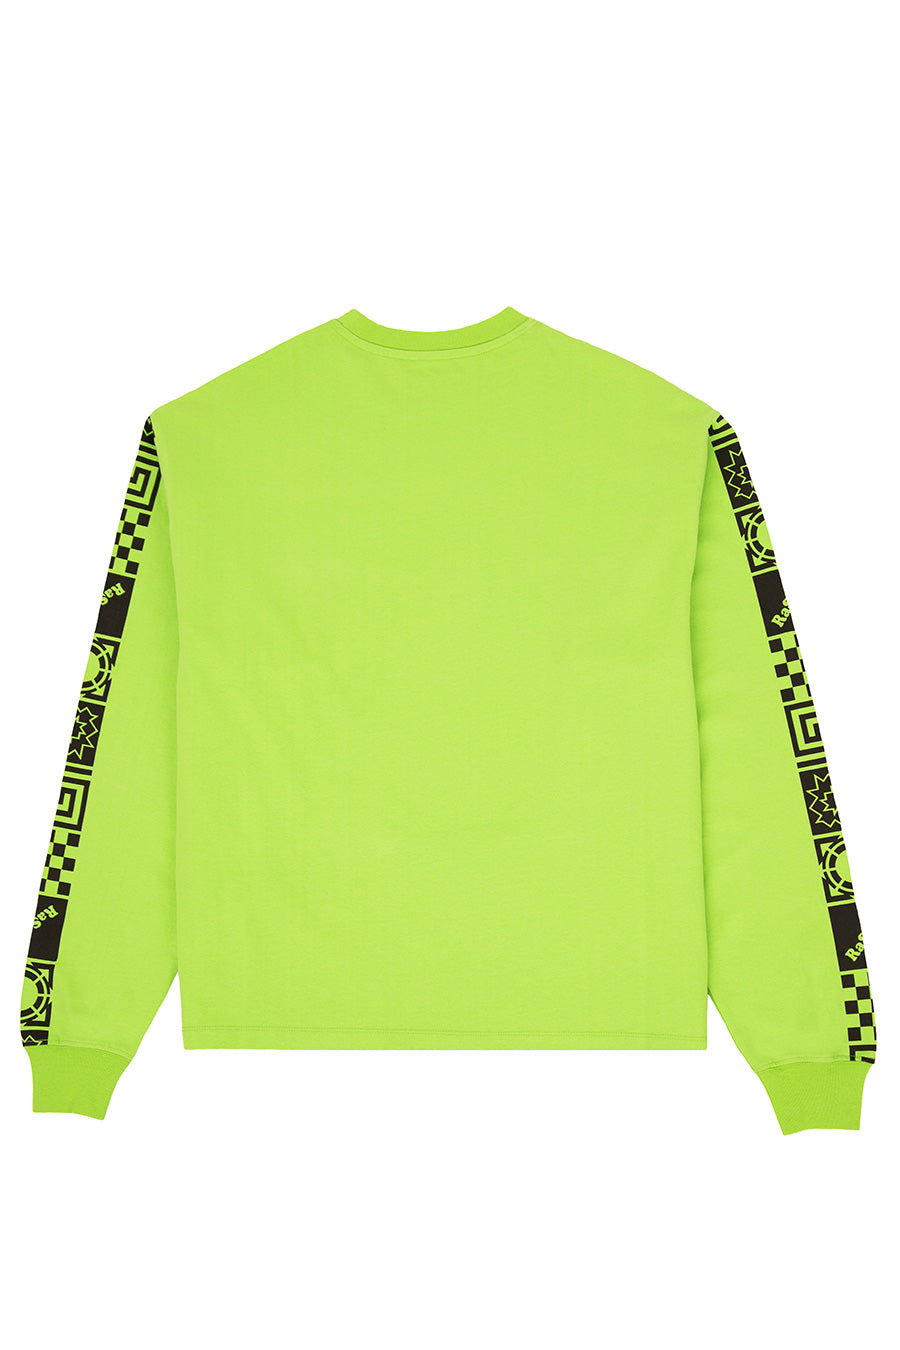 Rassvet - Green Rassvet Long Sleeve T-Shirt | 1032 SPACE